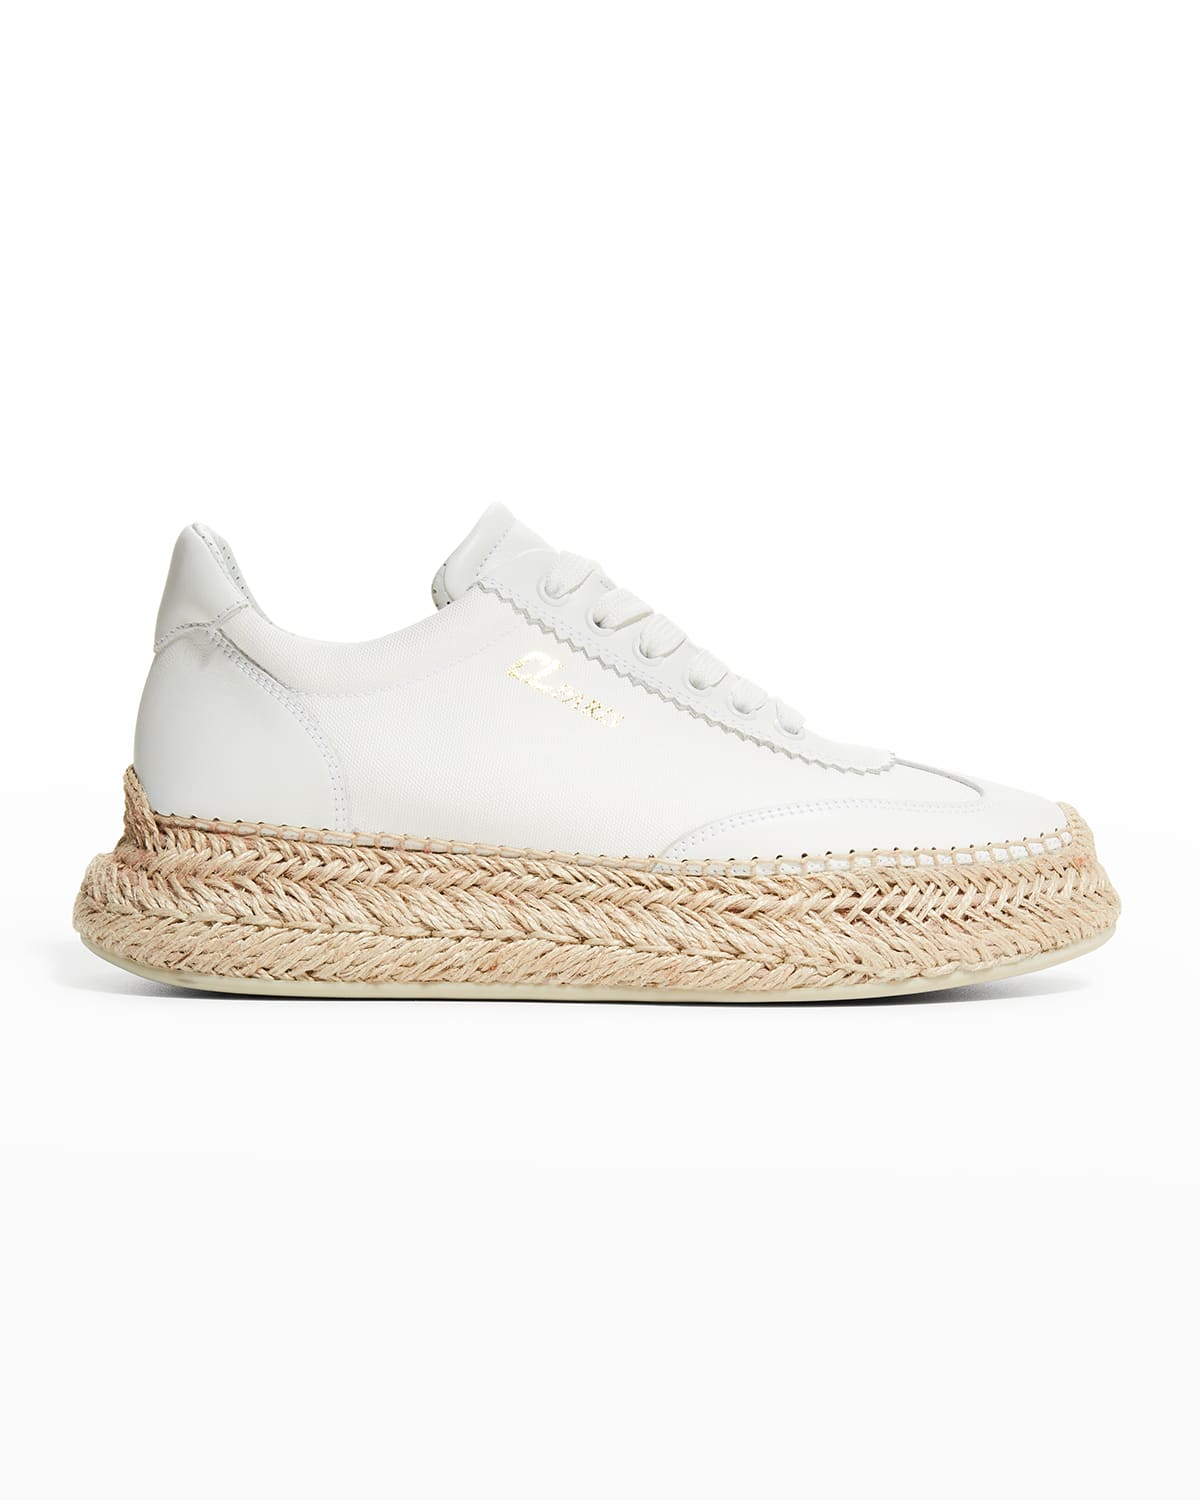 Espasneak Leather Low-Top Red Sole Espadrille Sneakers